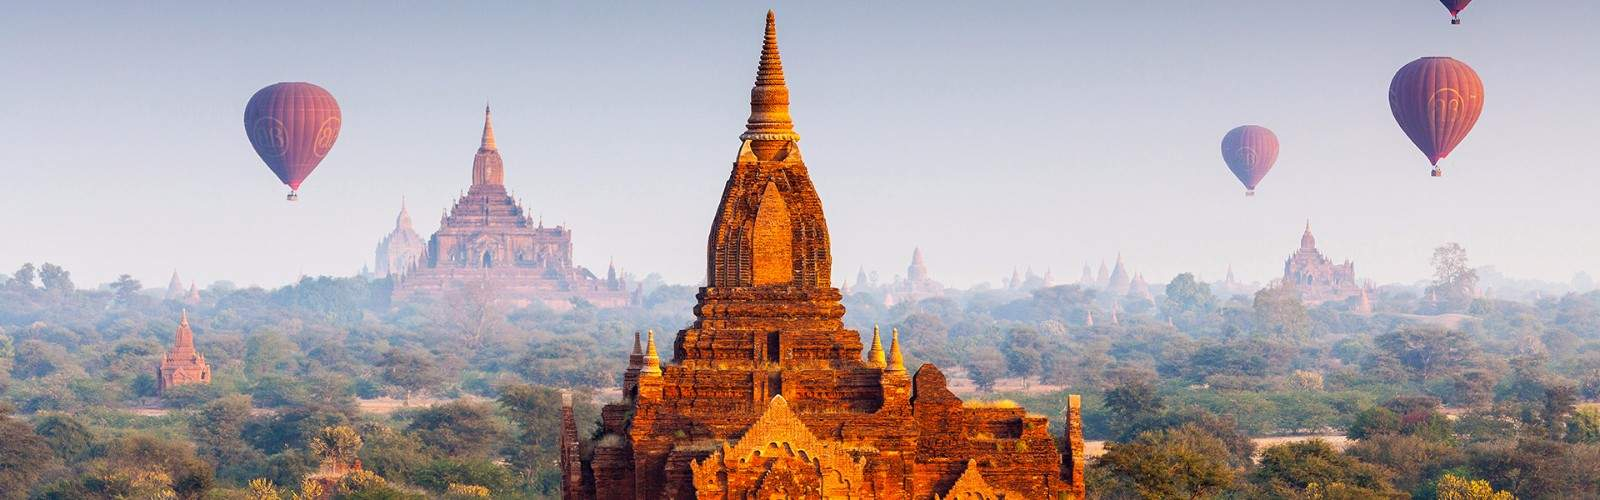 Tours Visiting The Temples of Bagan, Burma  Wendy Wu Tours